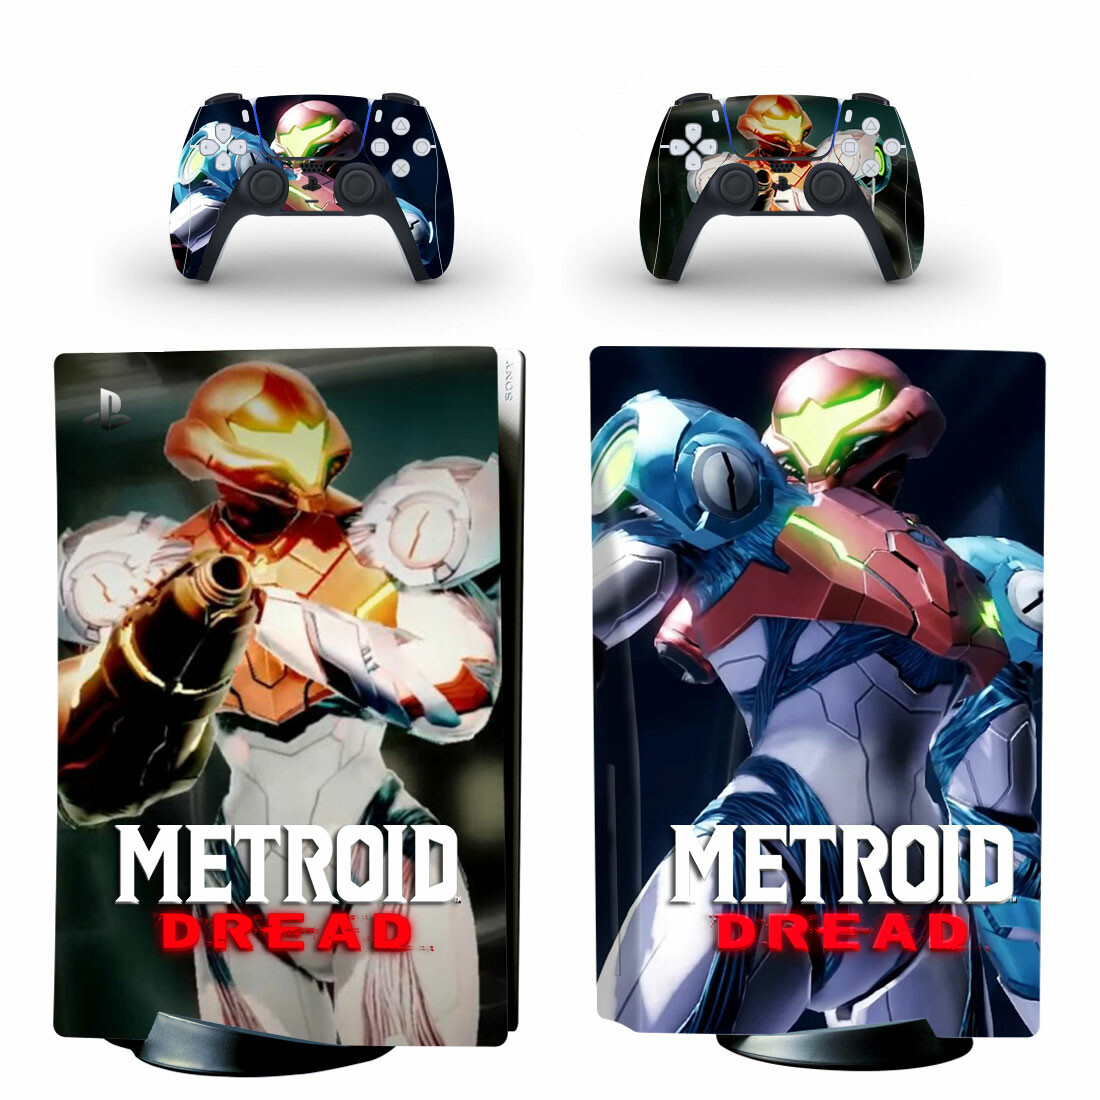 Metroid Dread Sticker Decal For PlayStation 5